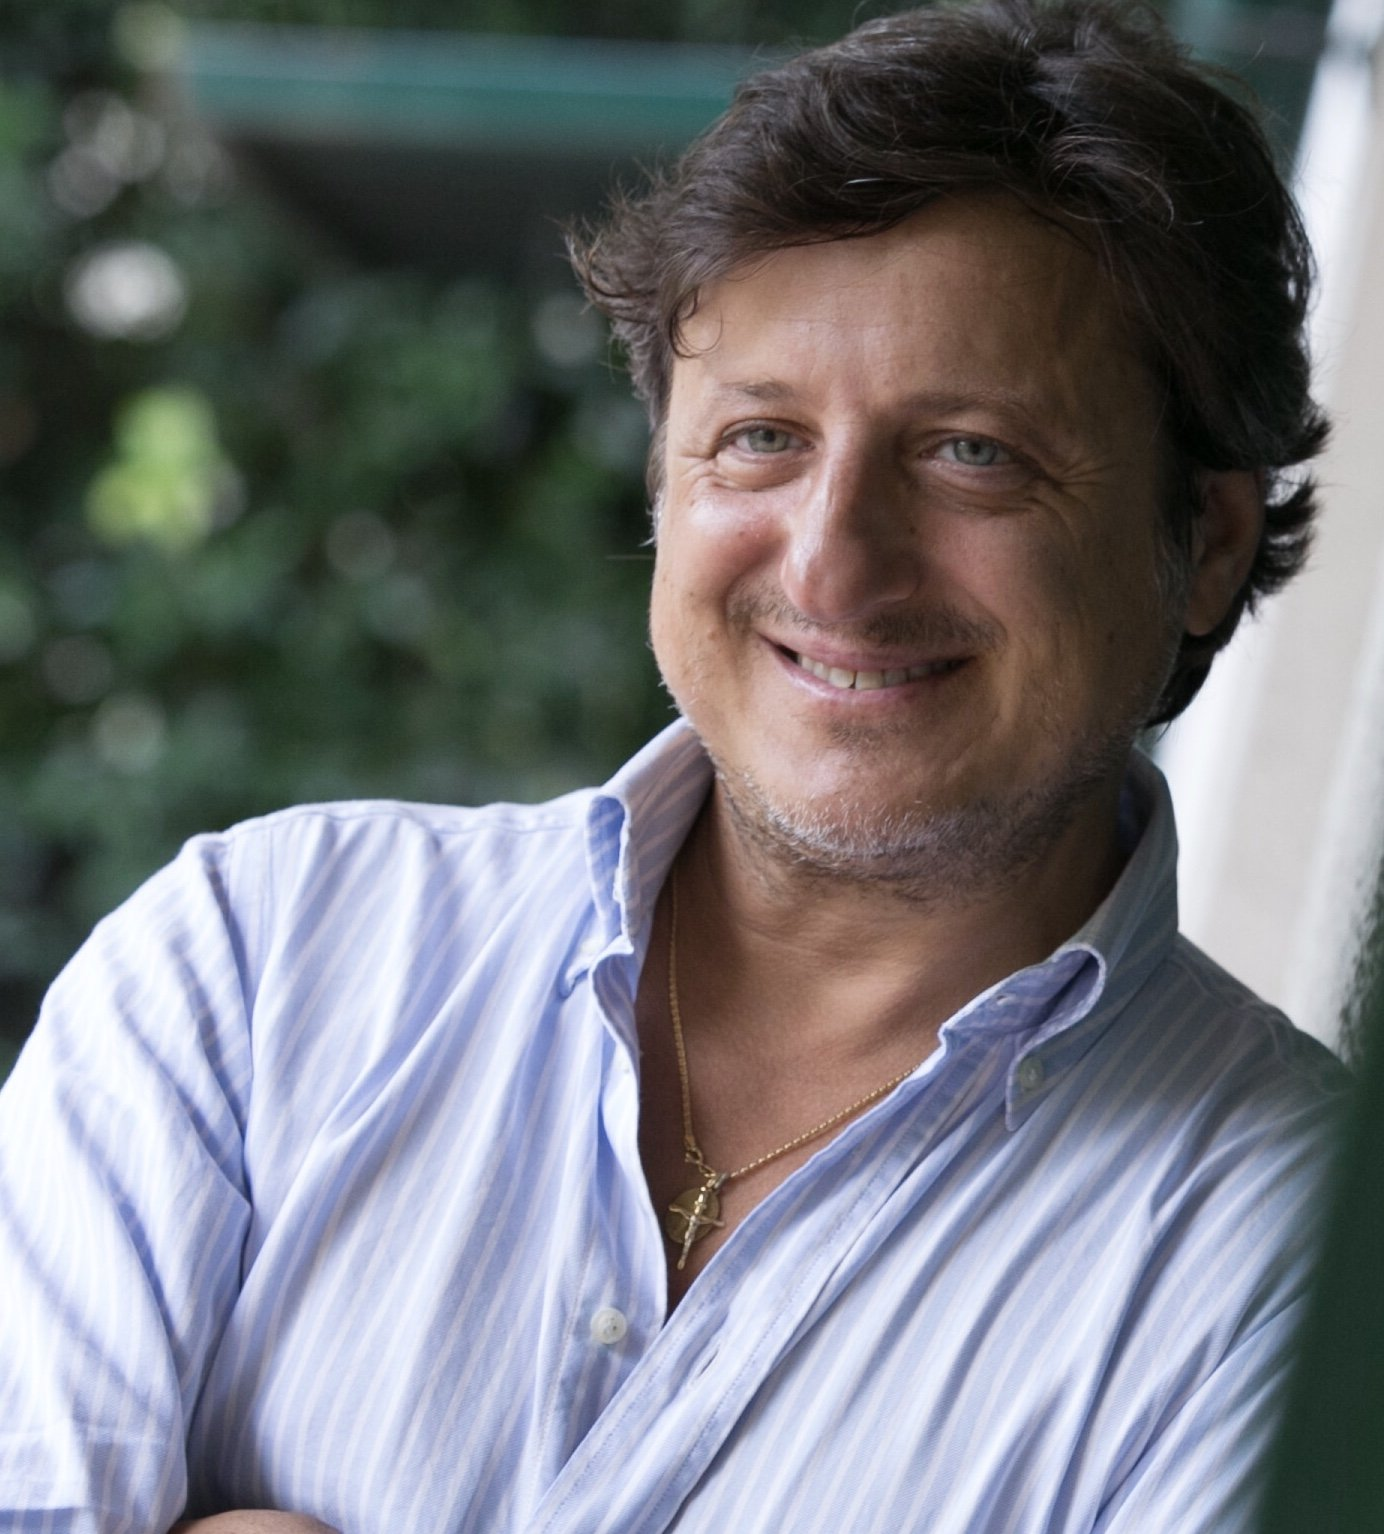 Marco Rizzelli, General Manager Seed Money